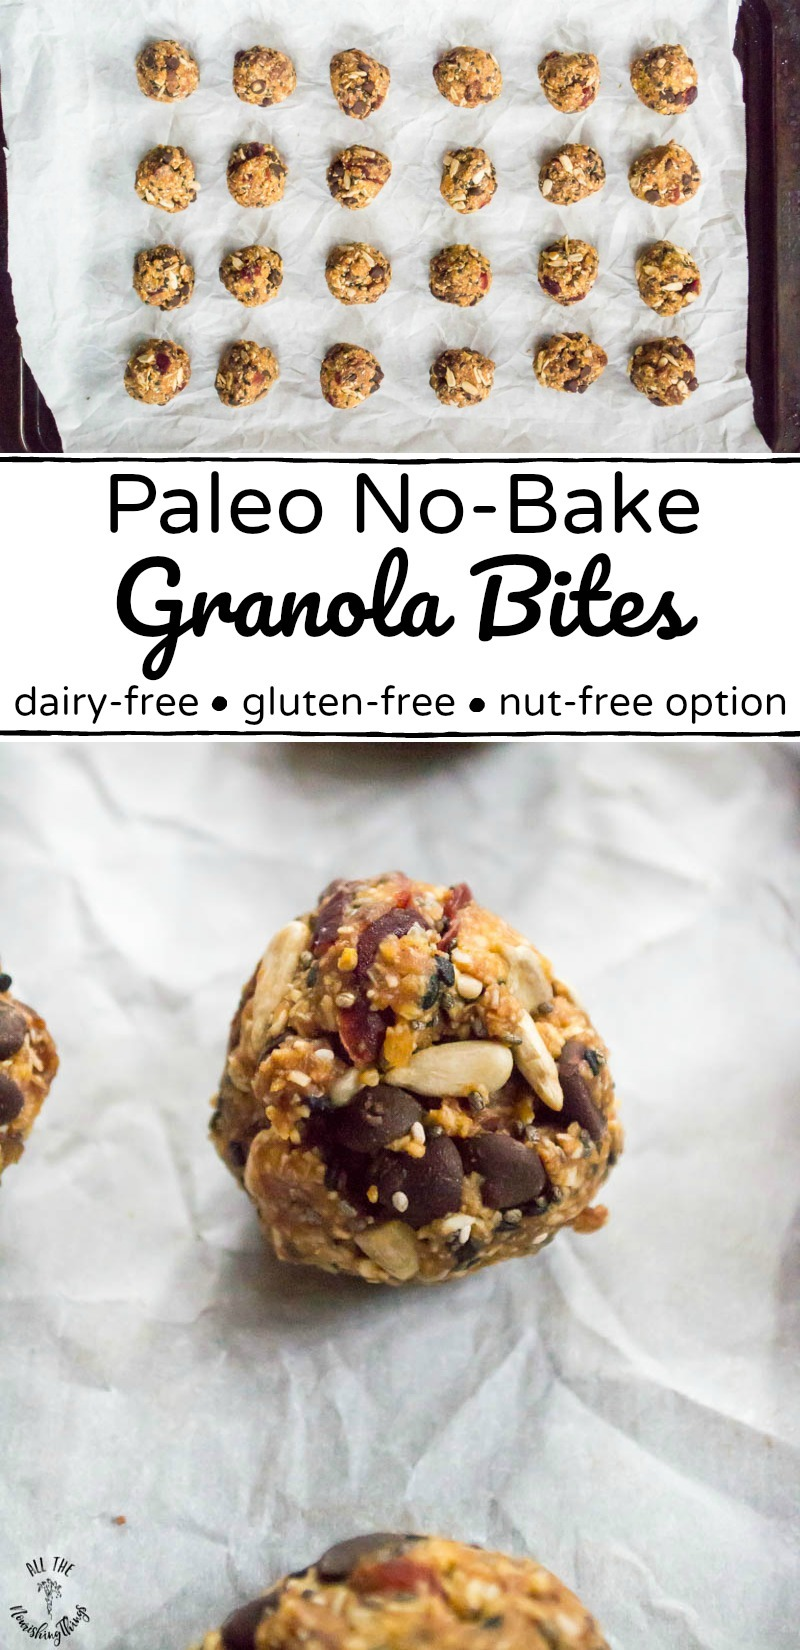 paleo no-bake granola bites on parchment paper with text overlay